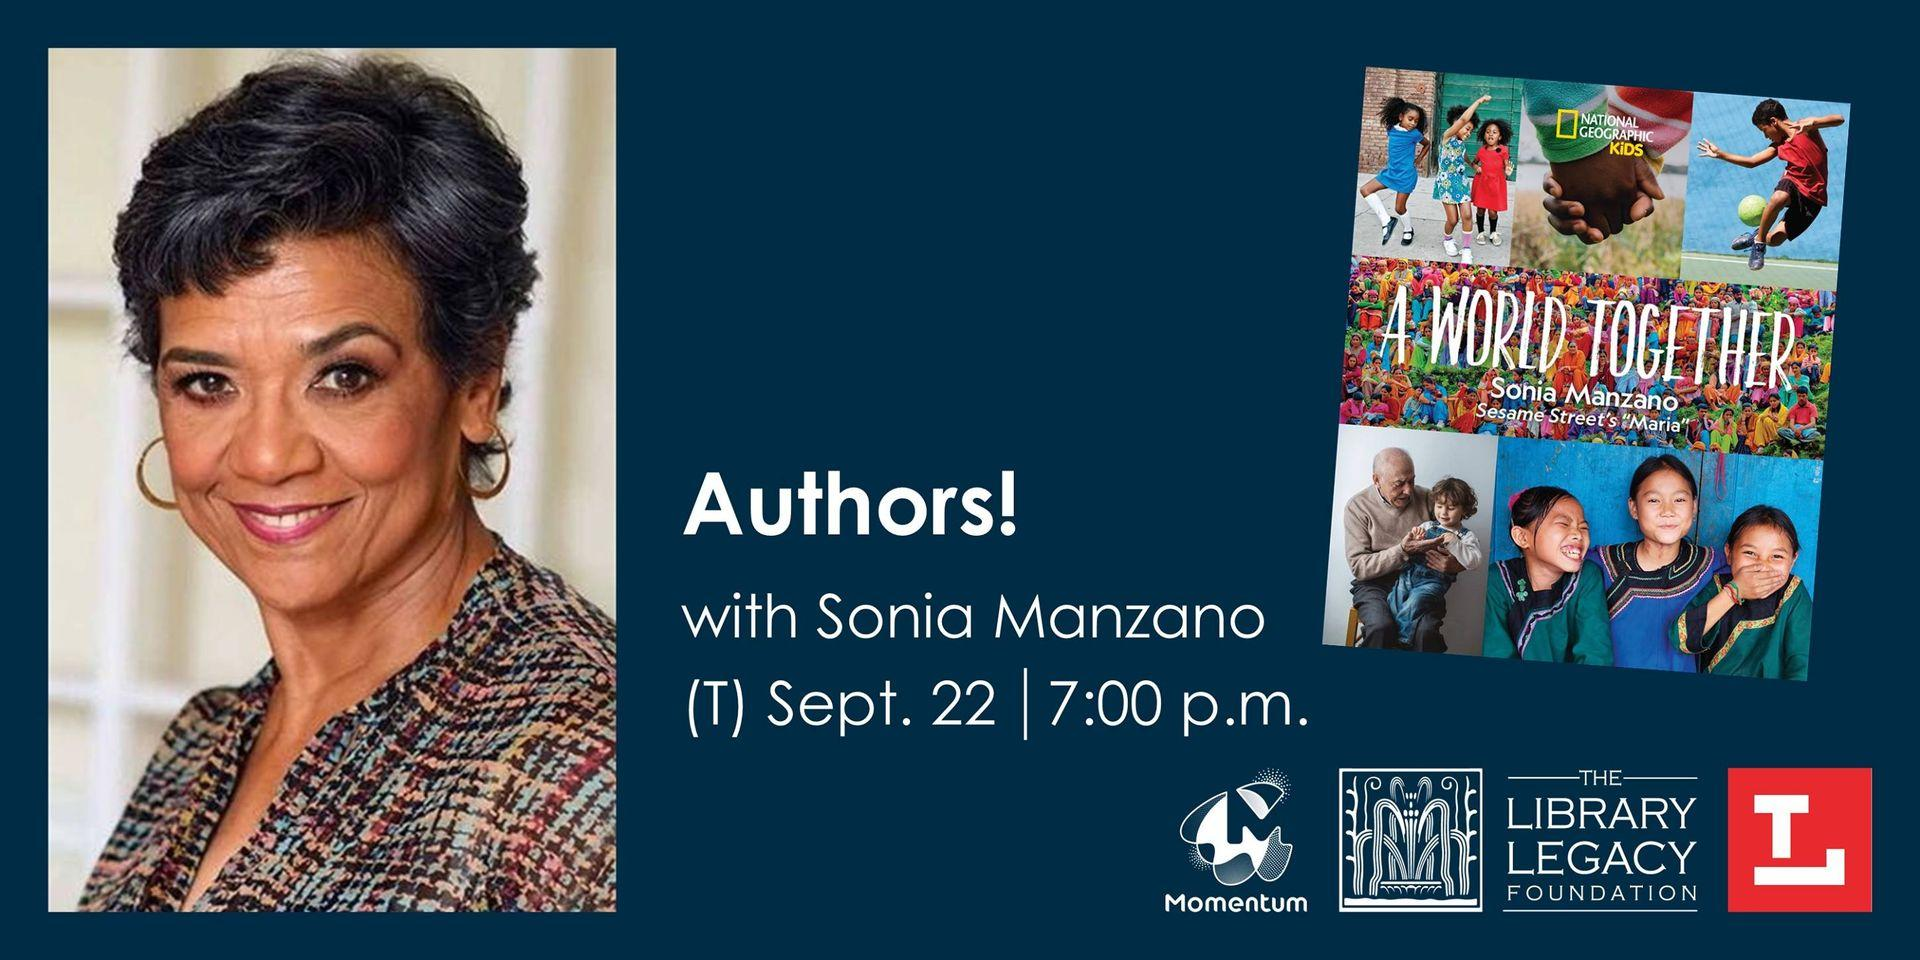 Authors-with-Sonia-Manzano.jpg#asset:4404